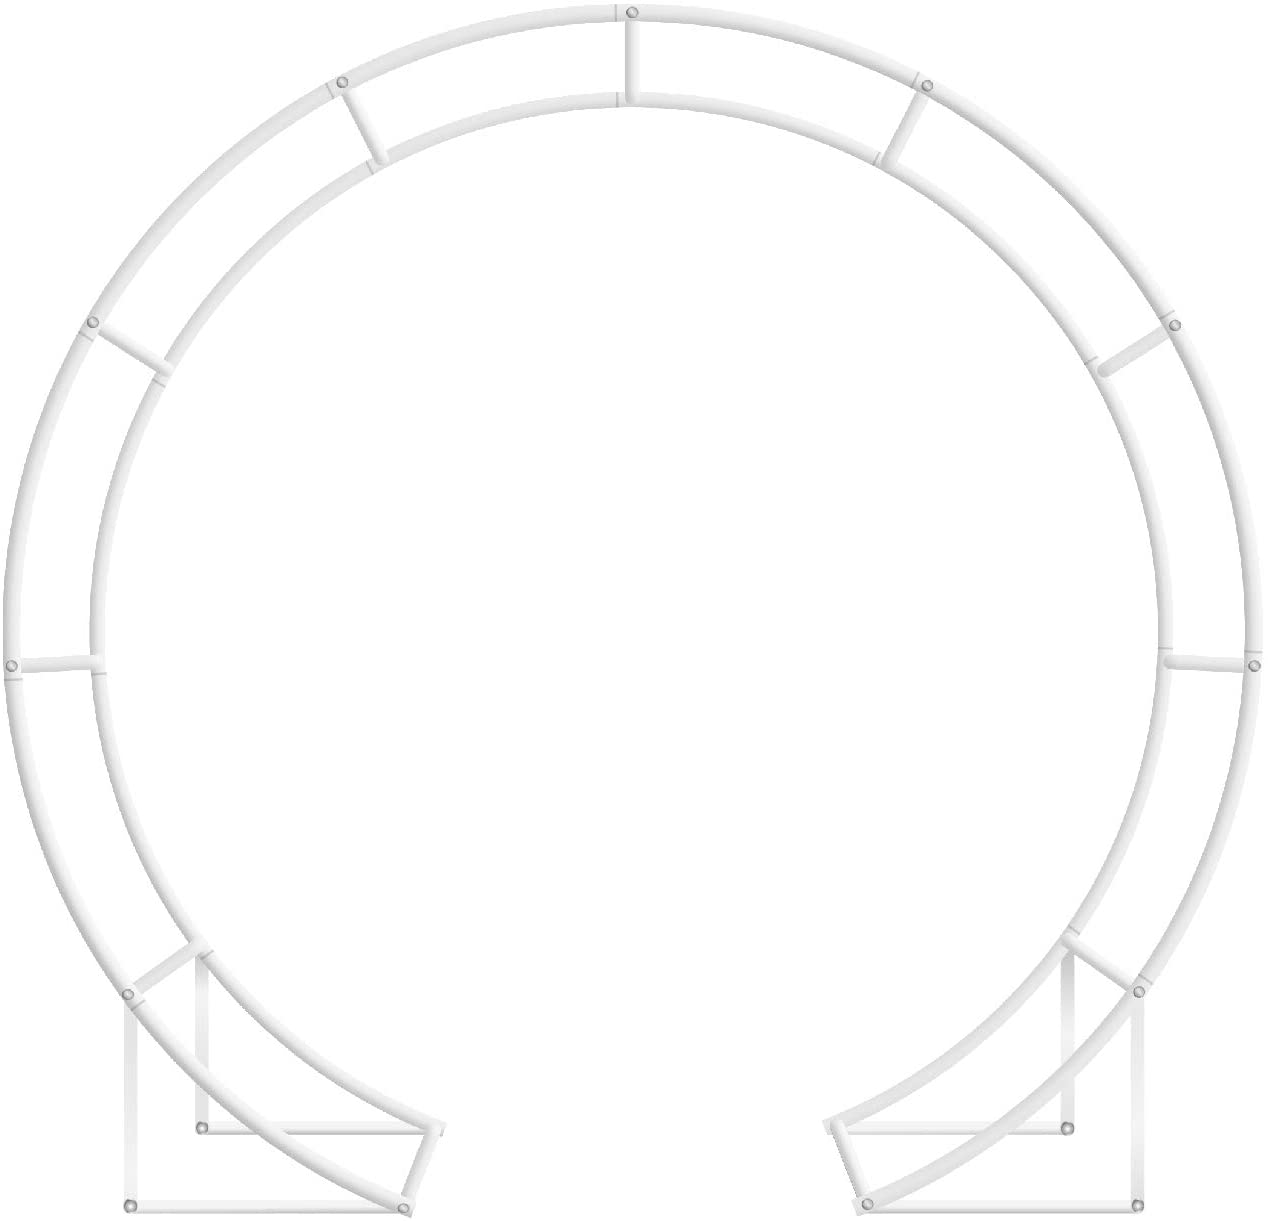 JC HUMMINGBIRD 5 Ft Round Metal Table Arch Garden Arbor for Garden, Outdoor, Party Decoration, Easy Assembly (with Support Legs, Ground Anchors, Screwdriver, Instructions)